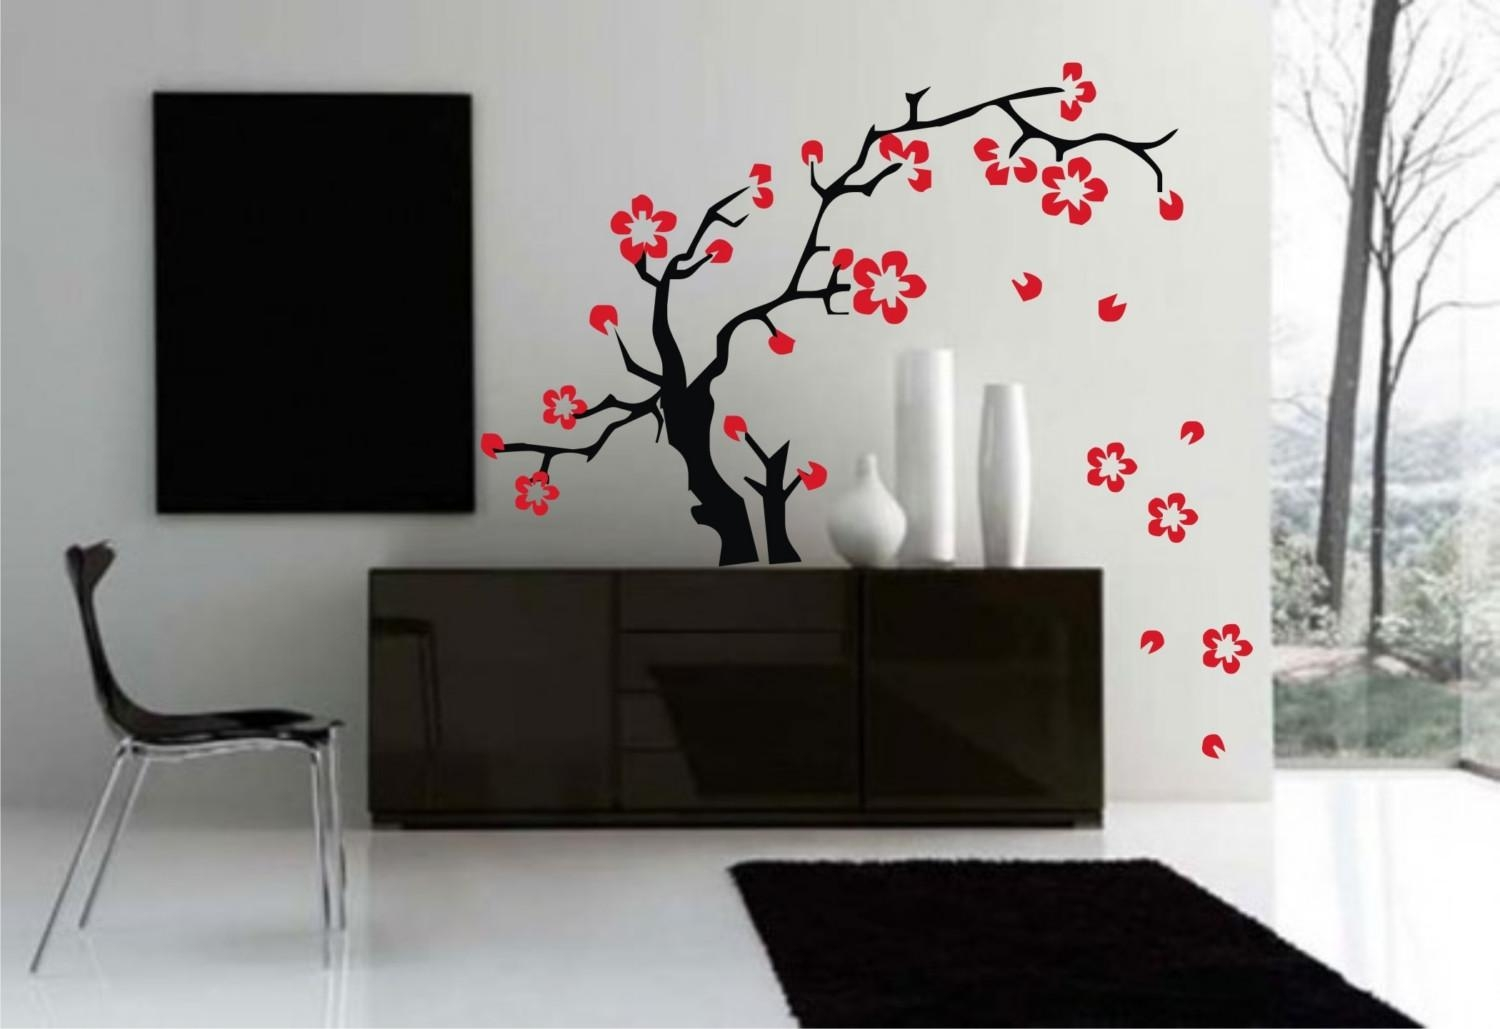 Wall Art Design Simple 6 Decal Wall Sticker Art Sakura Flowers Regarding Tattoos Wall Art (View 10 of 20)